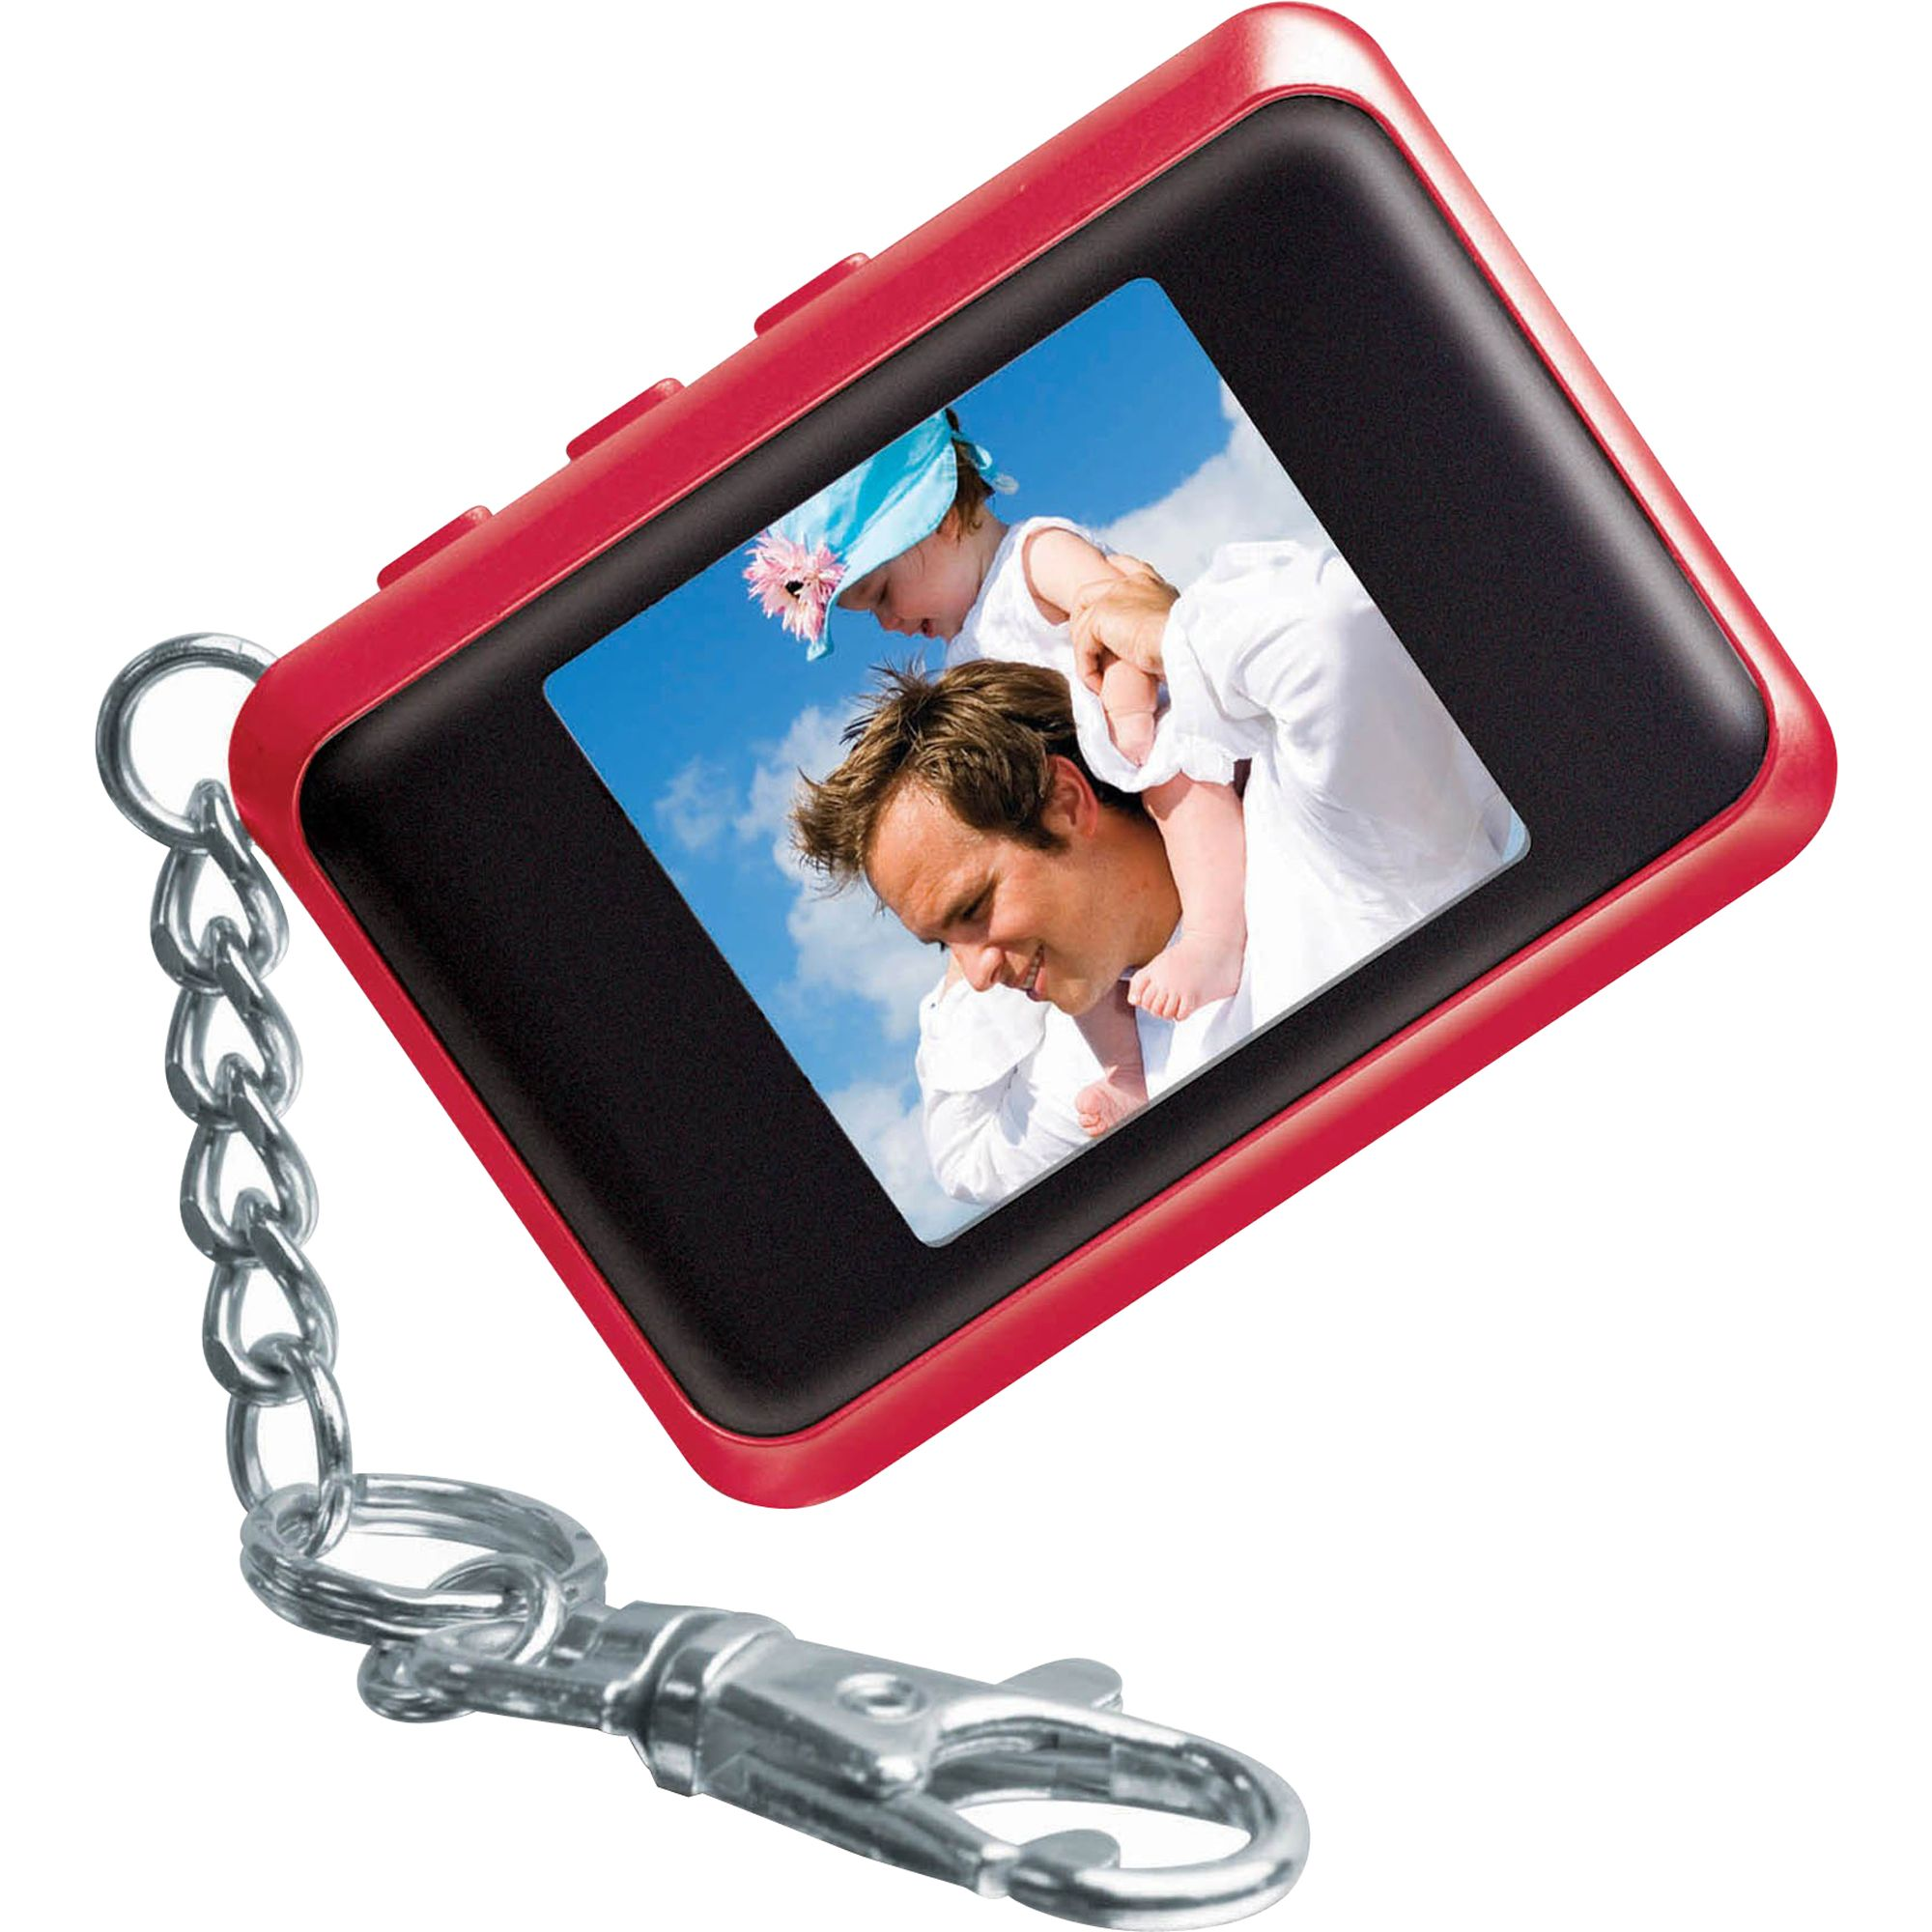 Kmart Digital Photo Frame Coby 1 5 In Digital Photo Keychain Red Tvs